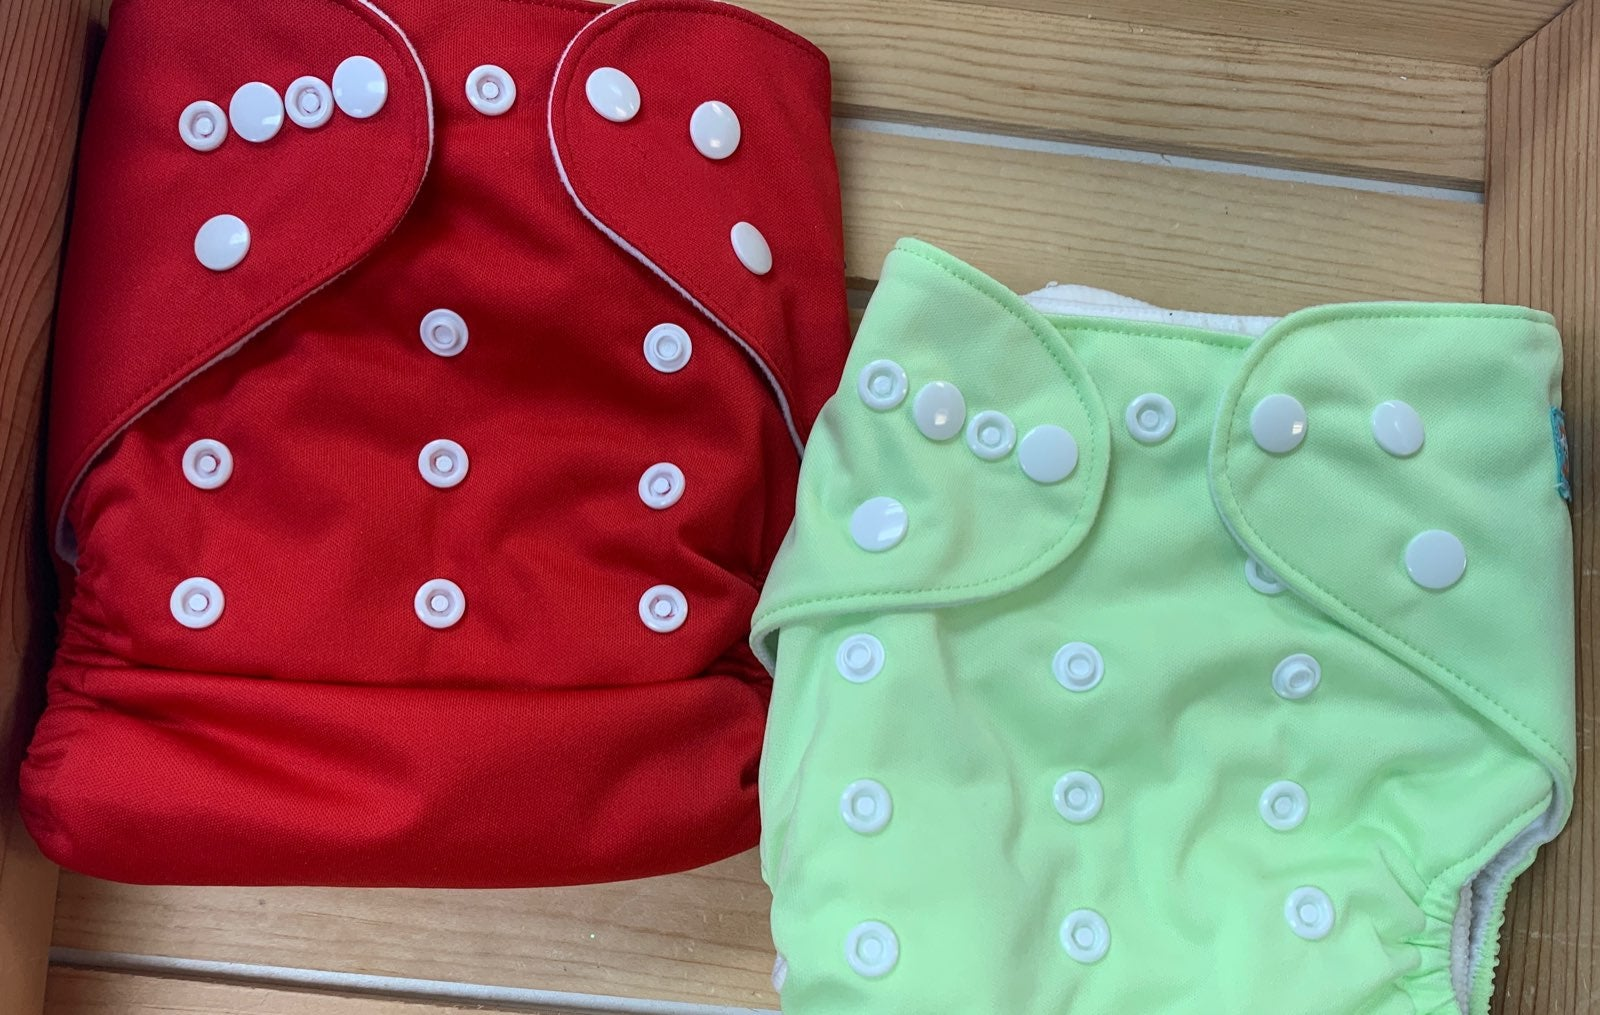 Two One Size Adjustable Clorh Diapers